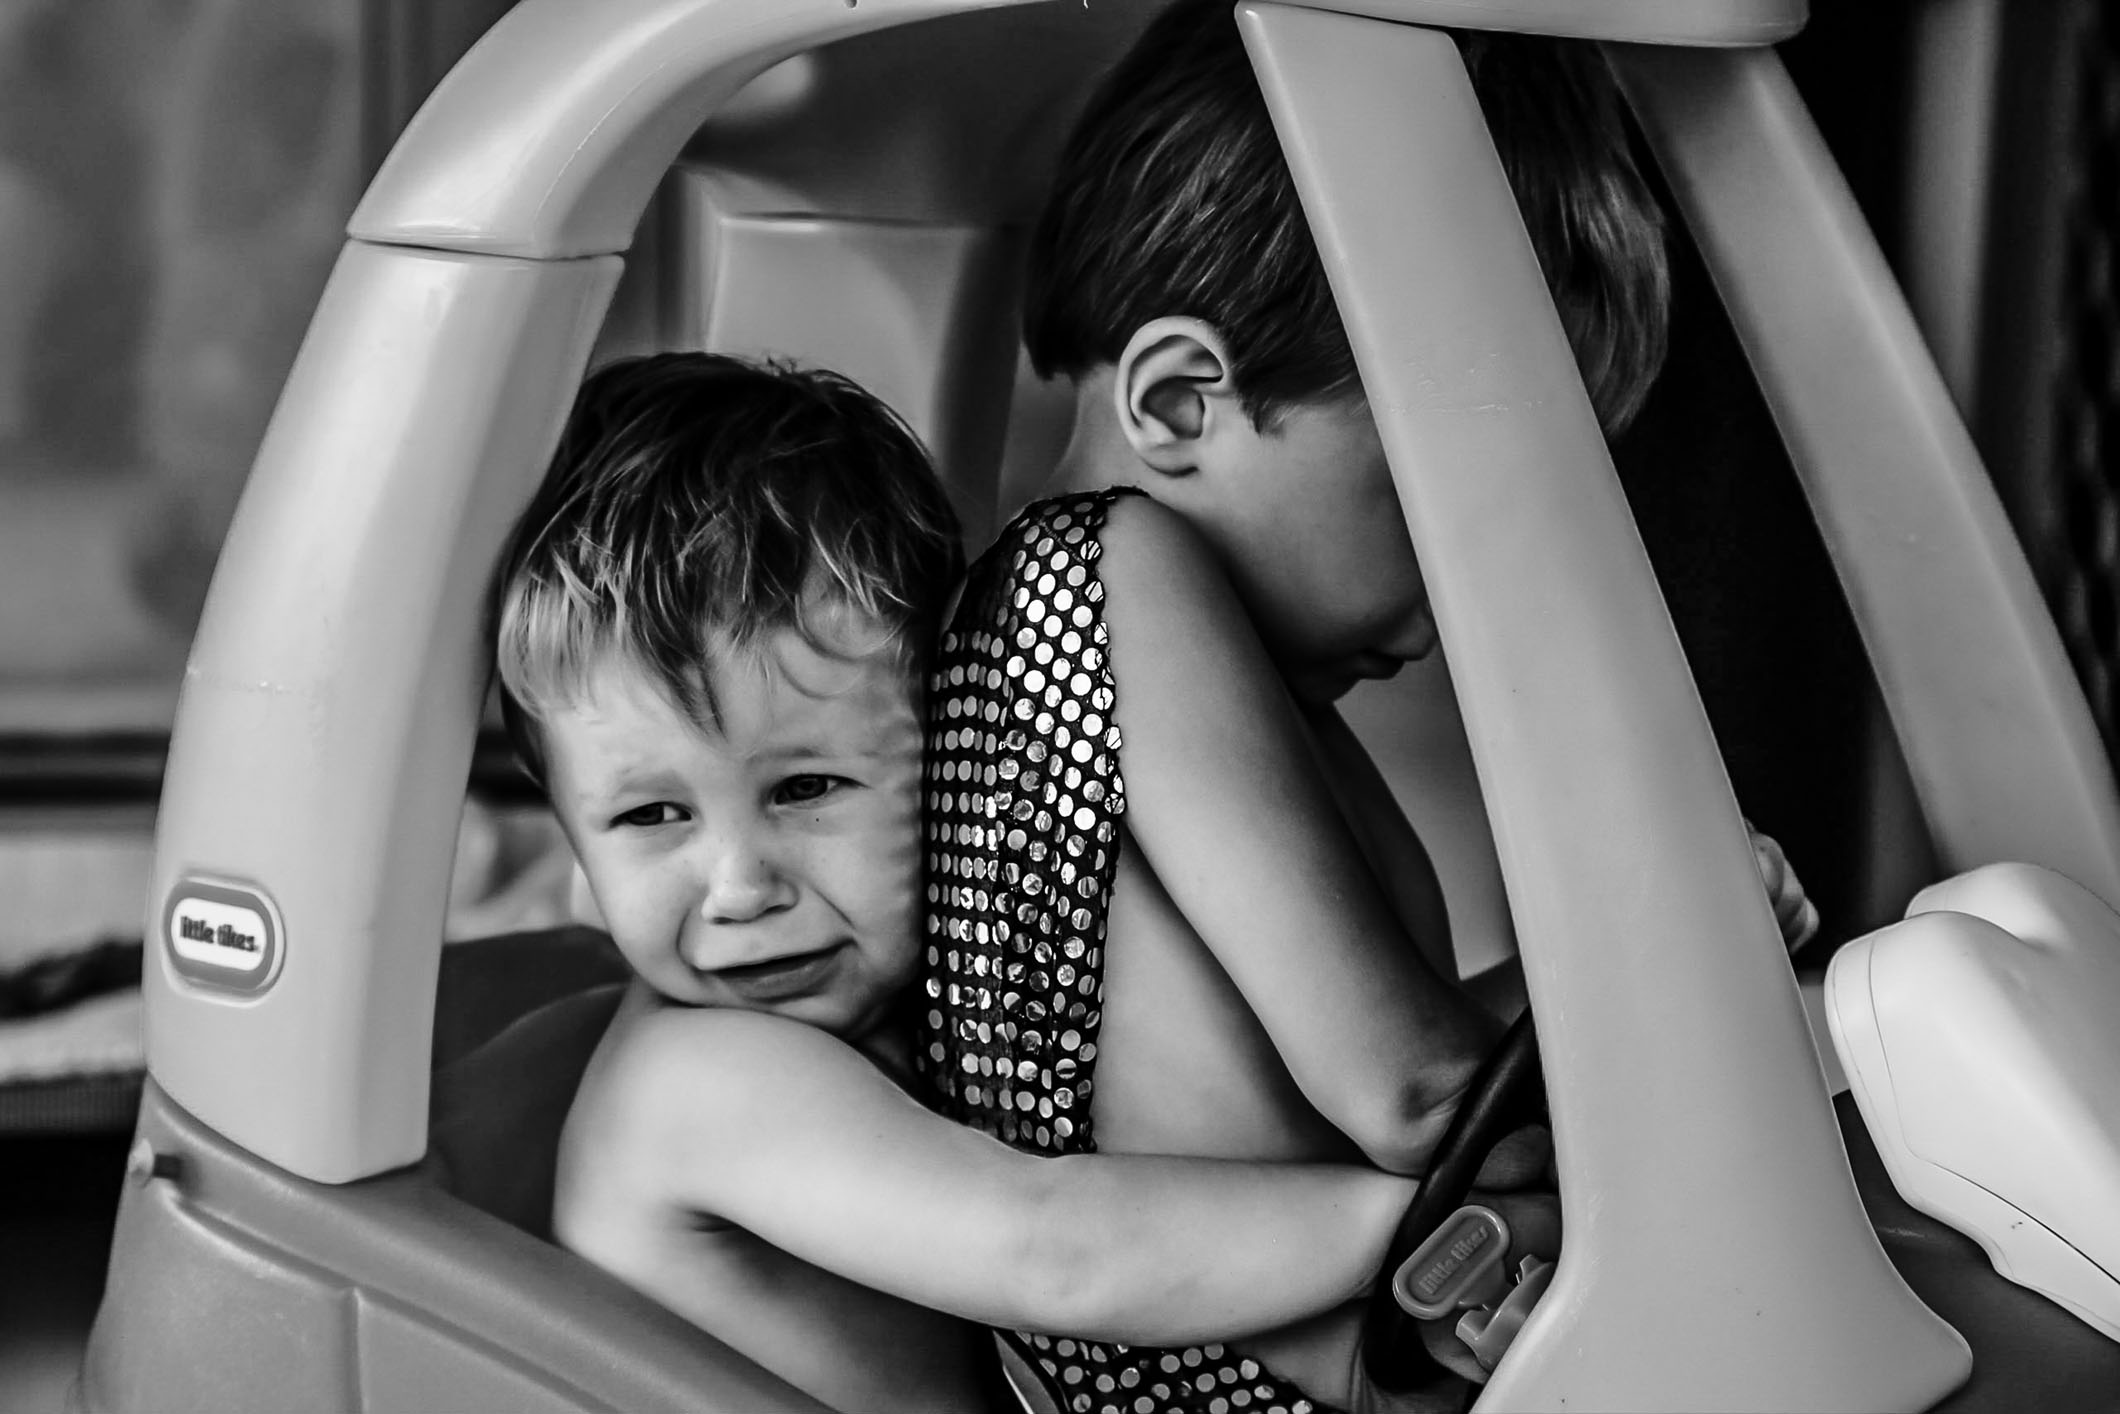 two-toddlers-fighting-over-who-will-drive-the-toy-car-candid-family-documentary-photography-gold-coast-australia